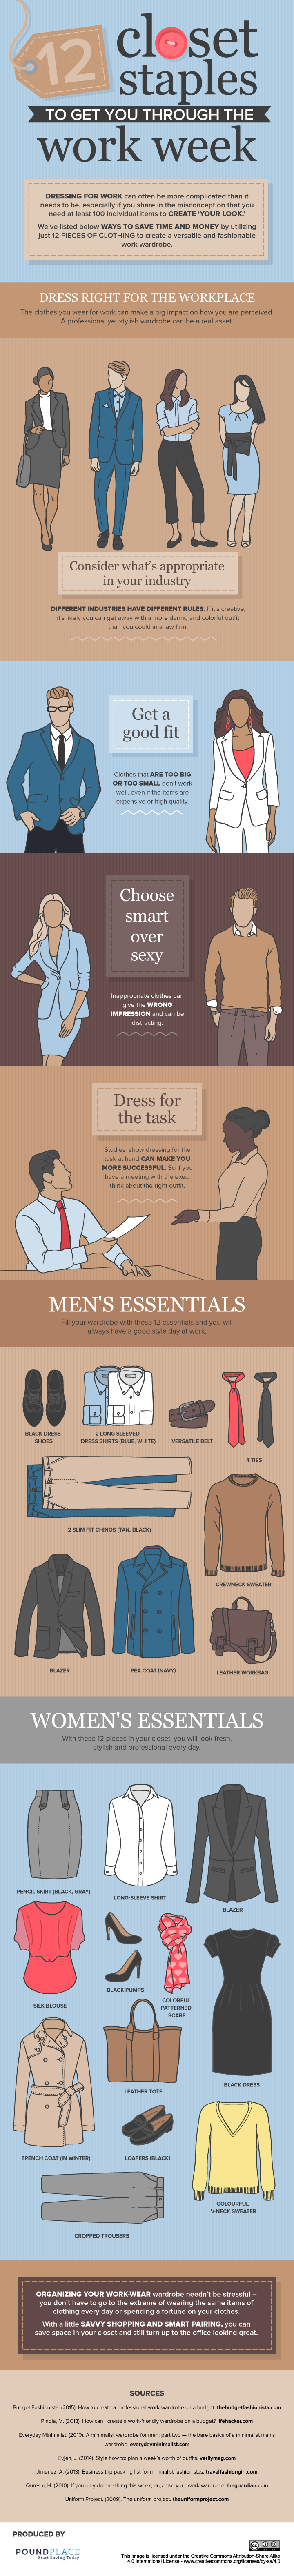 12 Closet Staples To Get You Through The Work Week #Infographic